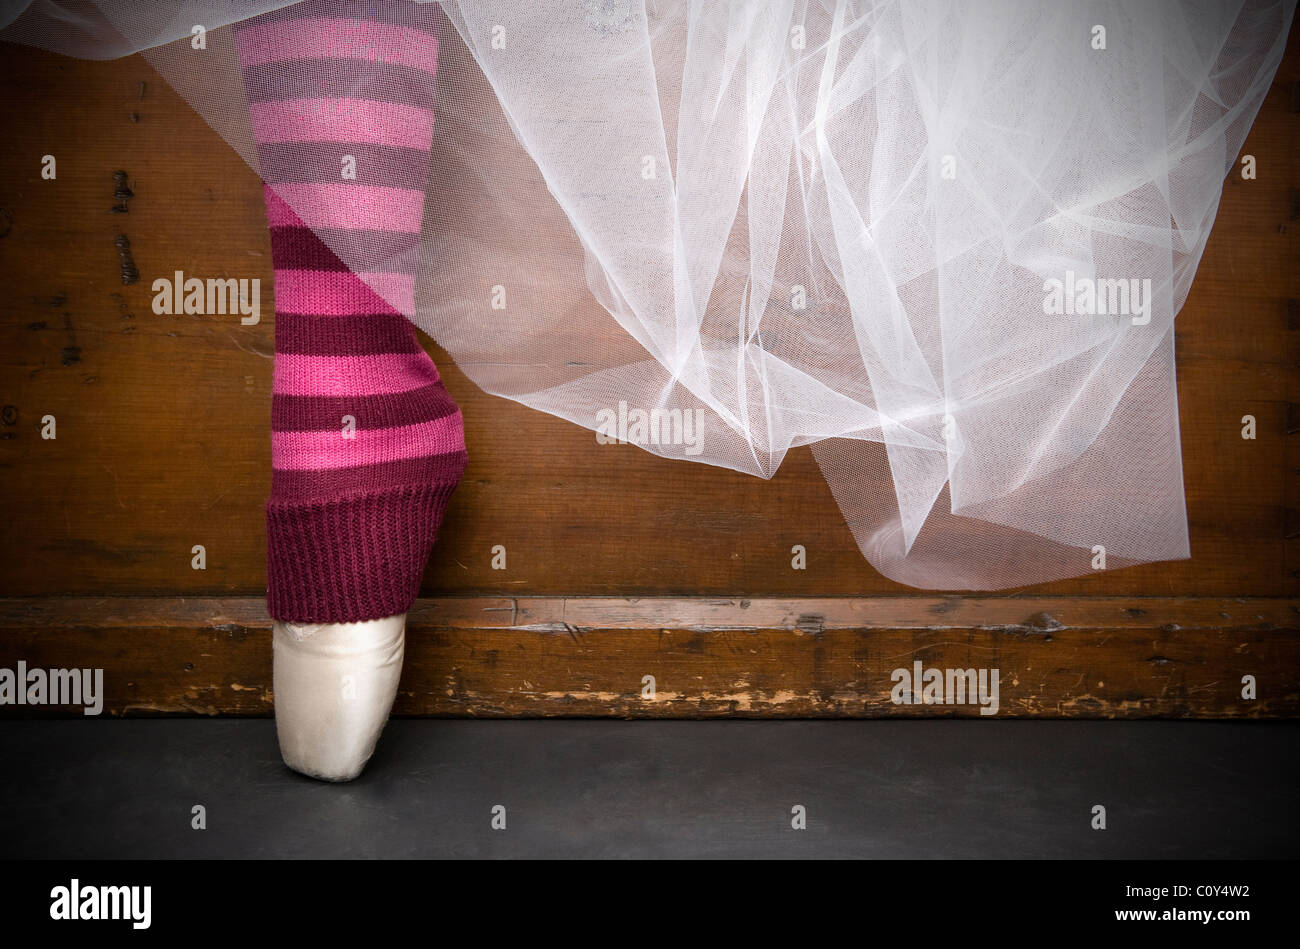 Detailed portrait of a ballerina's white tutu with point shoes and red striped stockings. - Stock Image